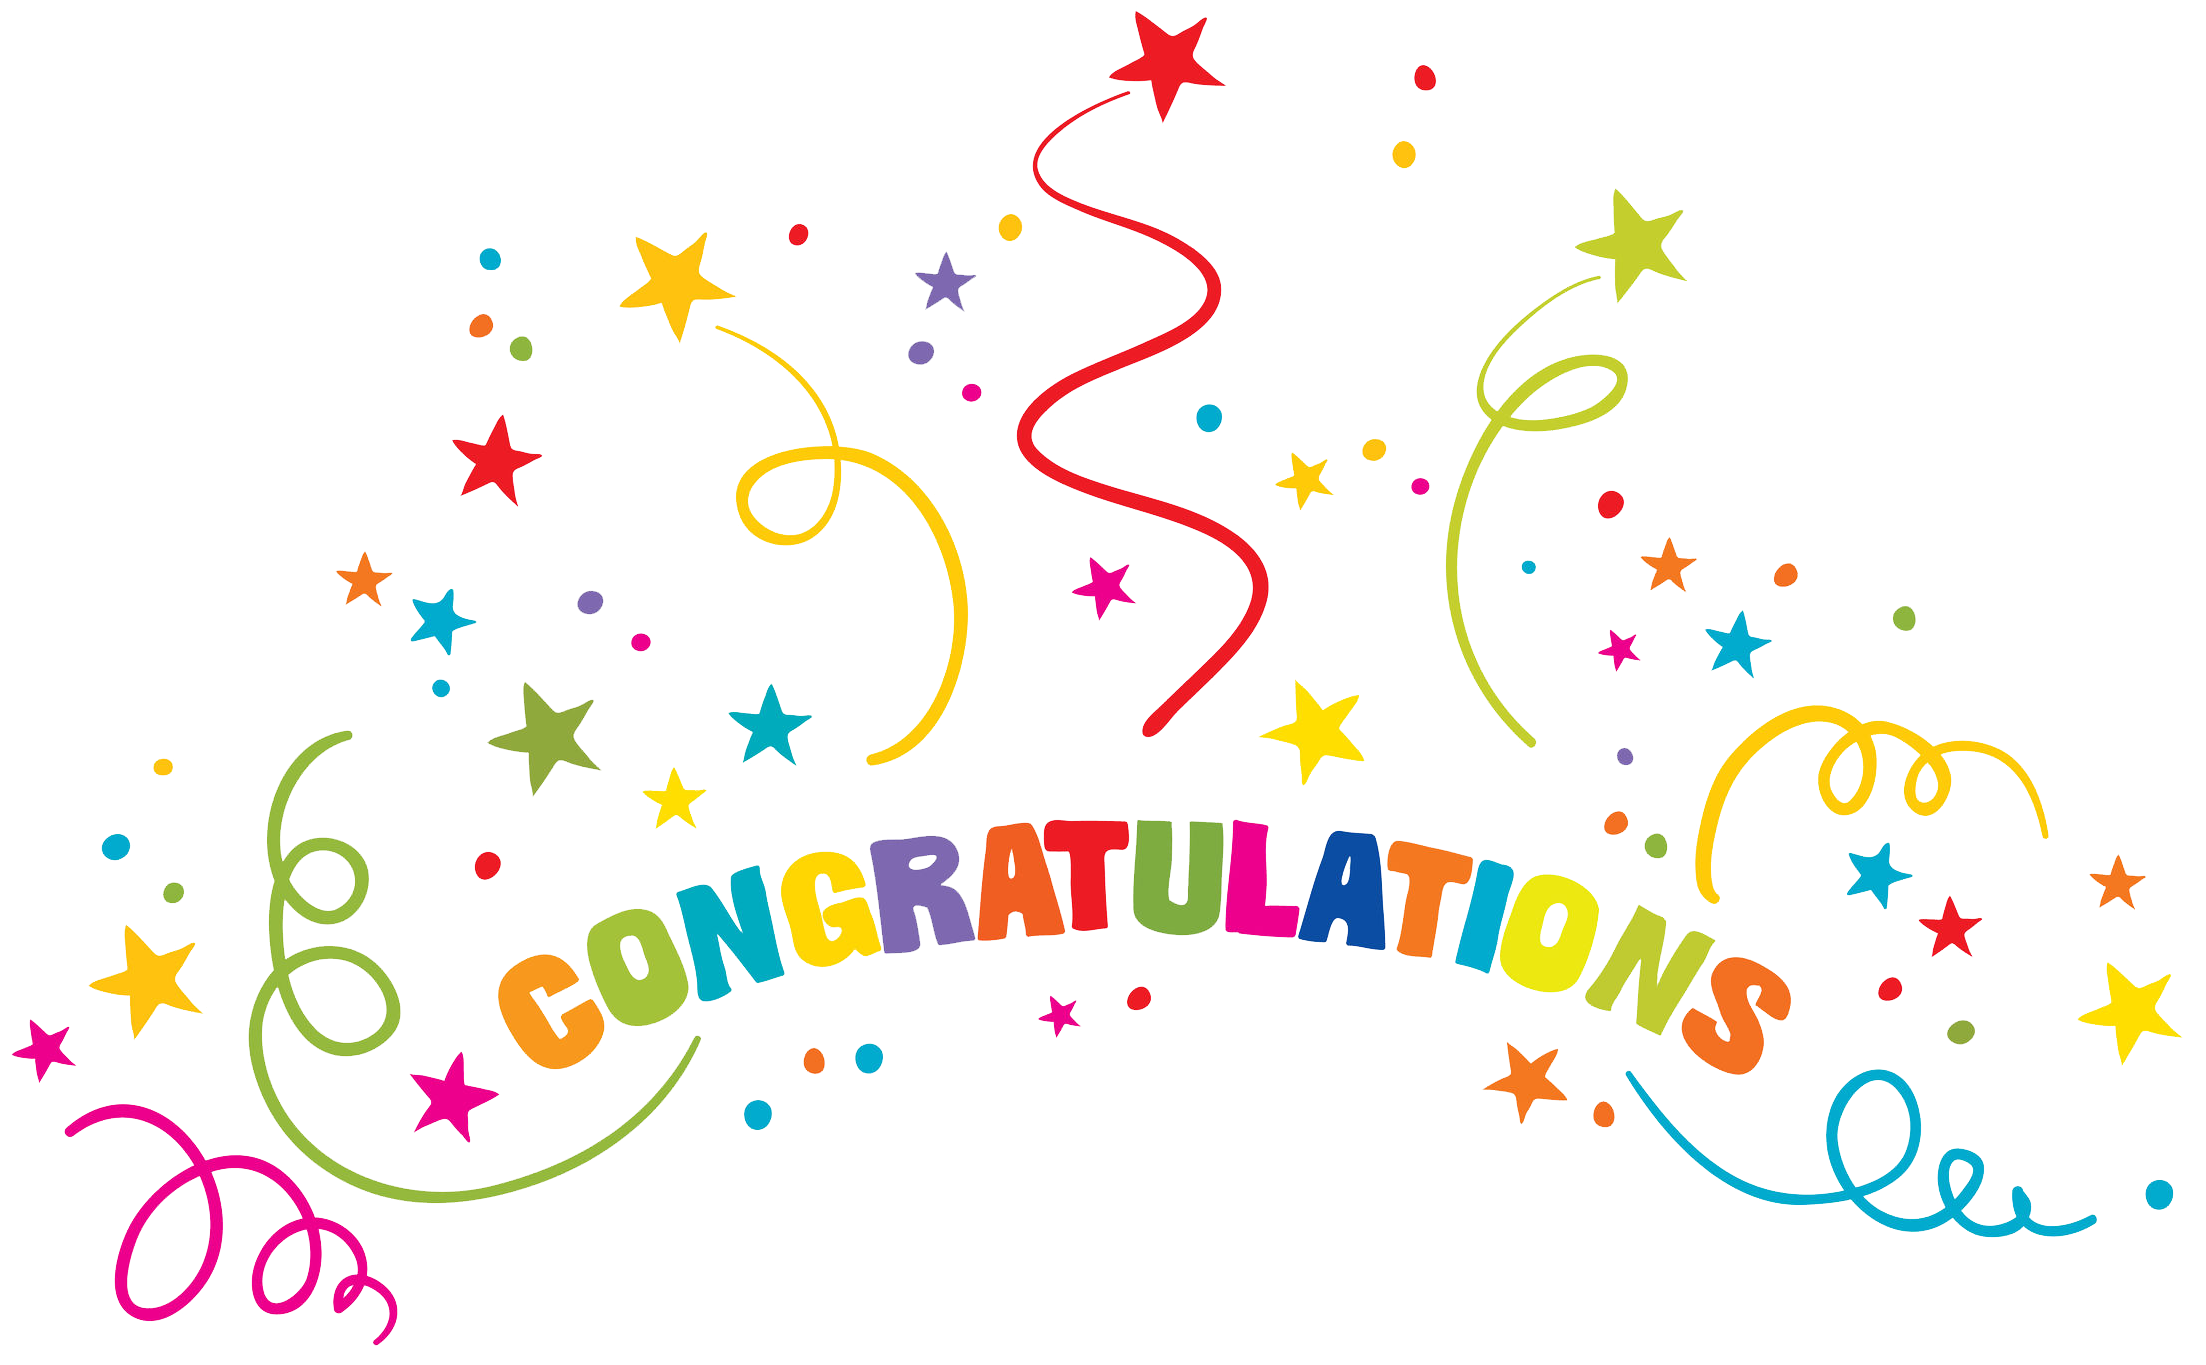 Congratulation-Free-Download-PNG